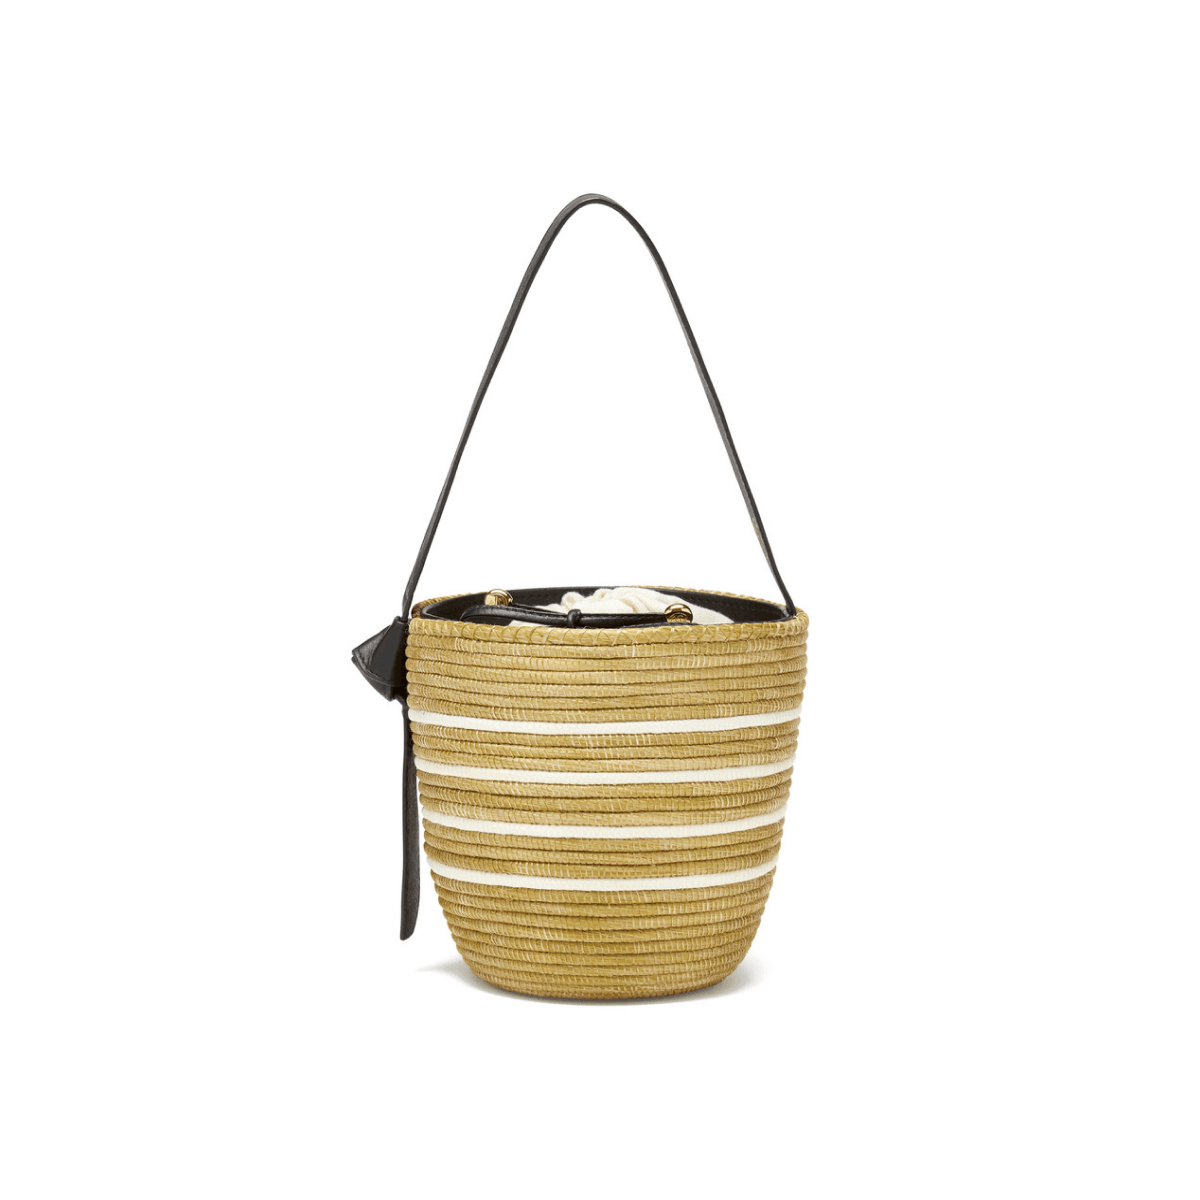 Cesta Collective bag